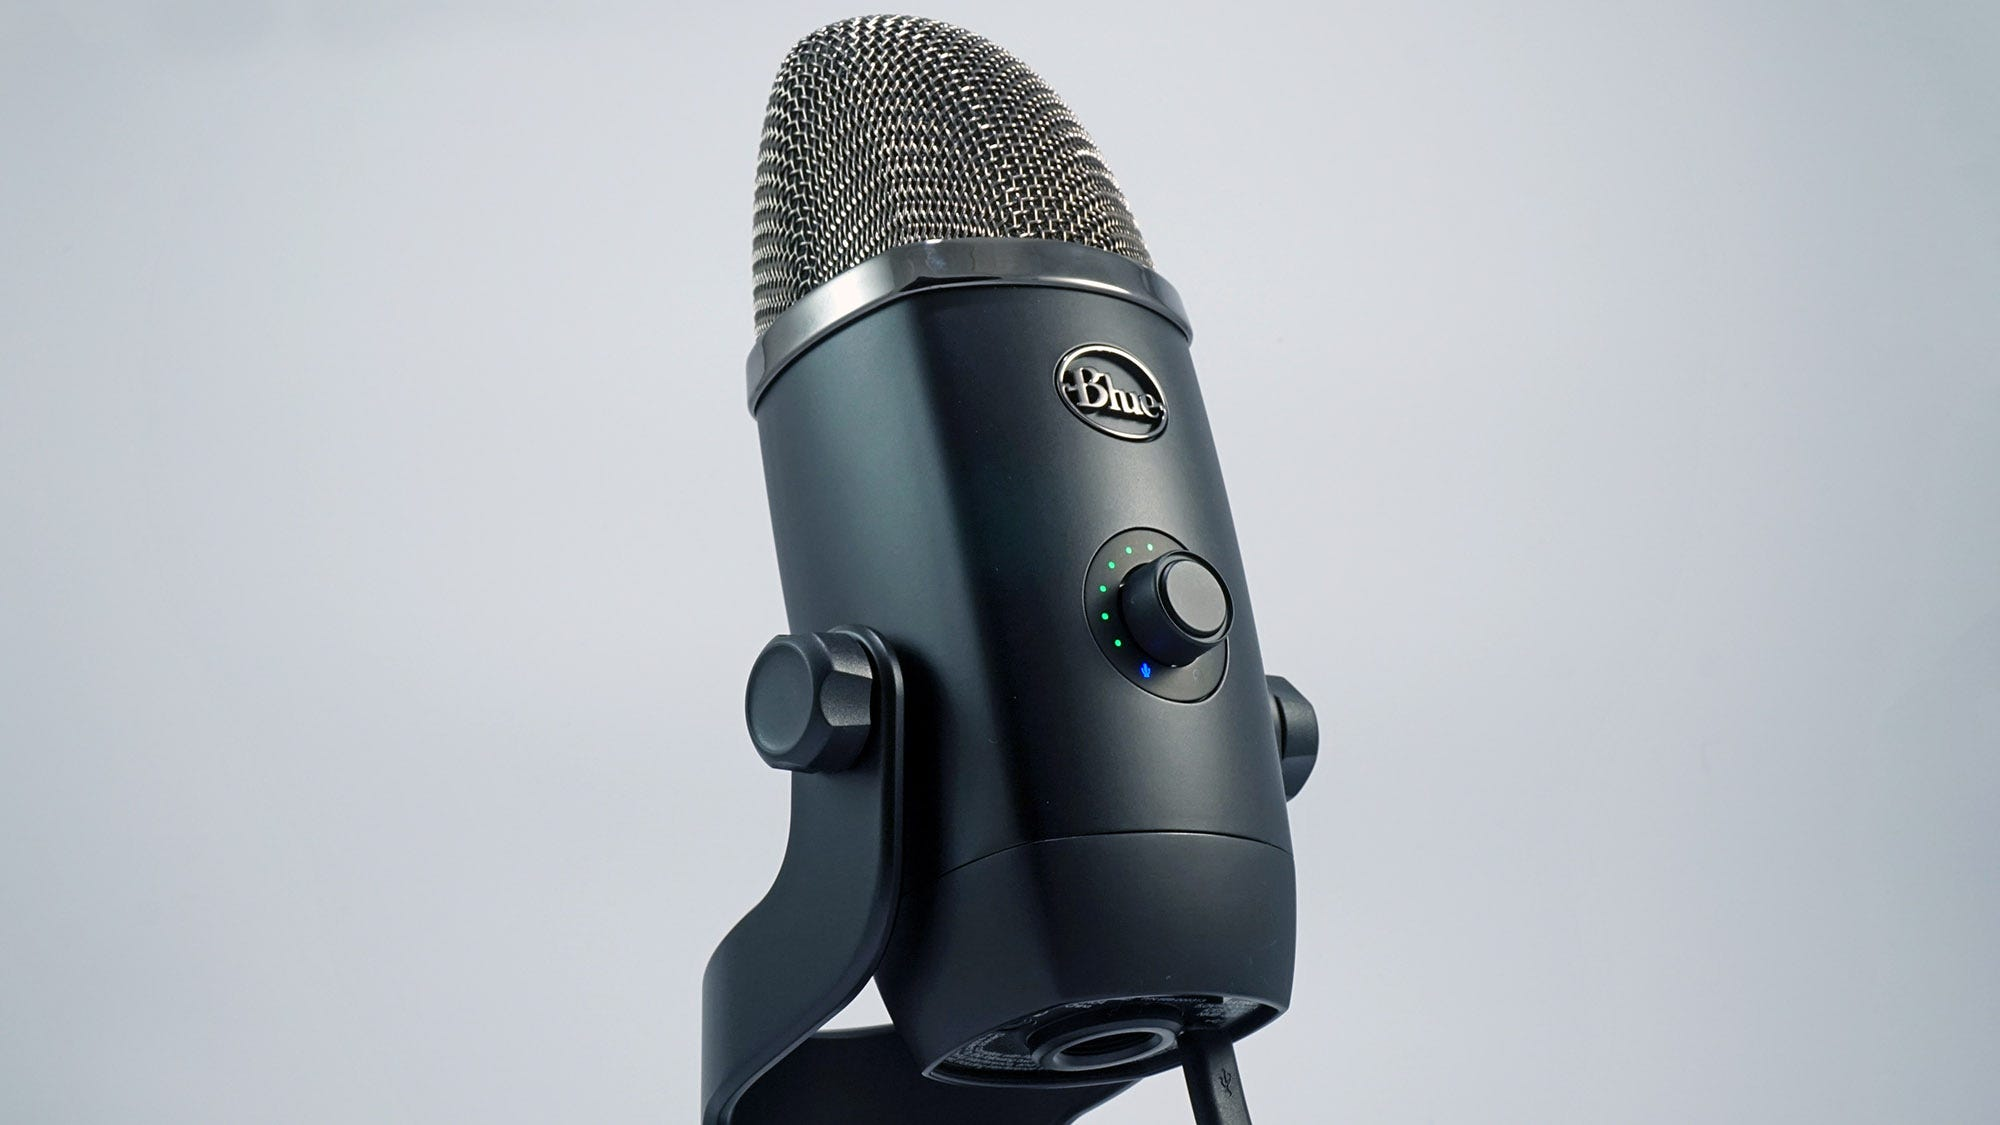 The Yeti X, the sequel to the phenomenal Blue Yeti, hits all the right notes.